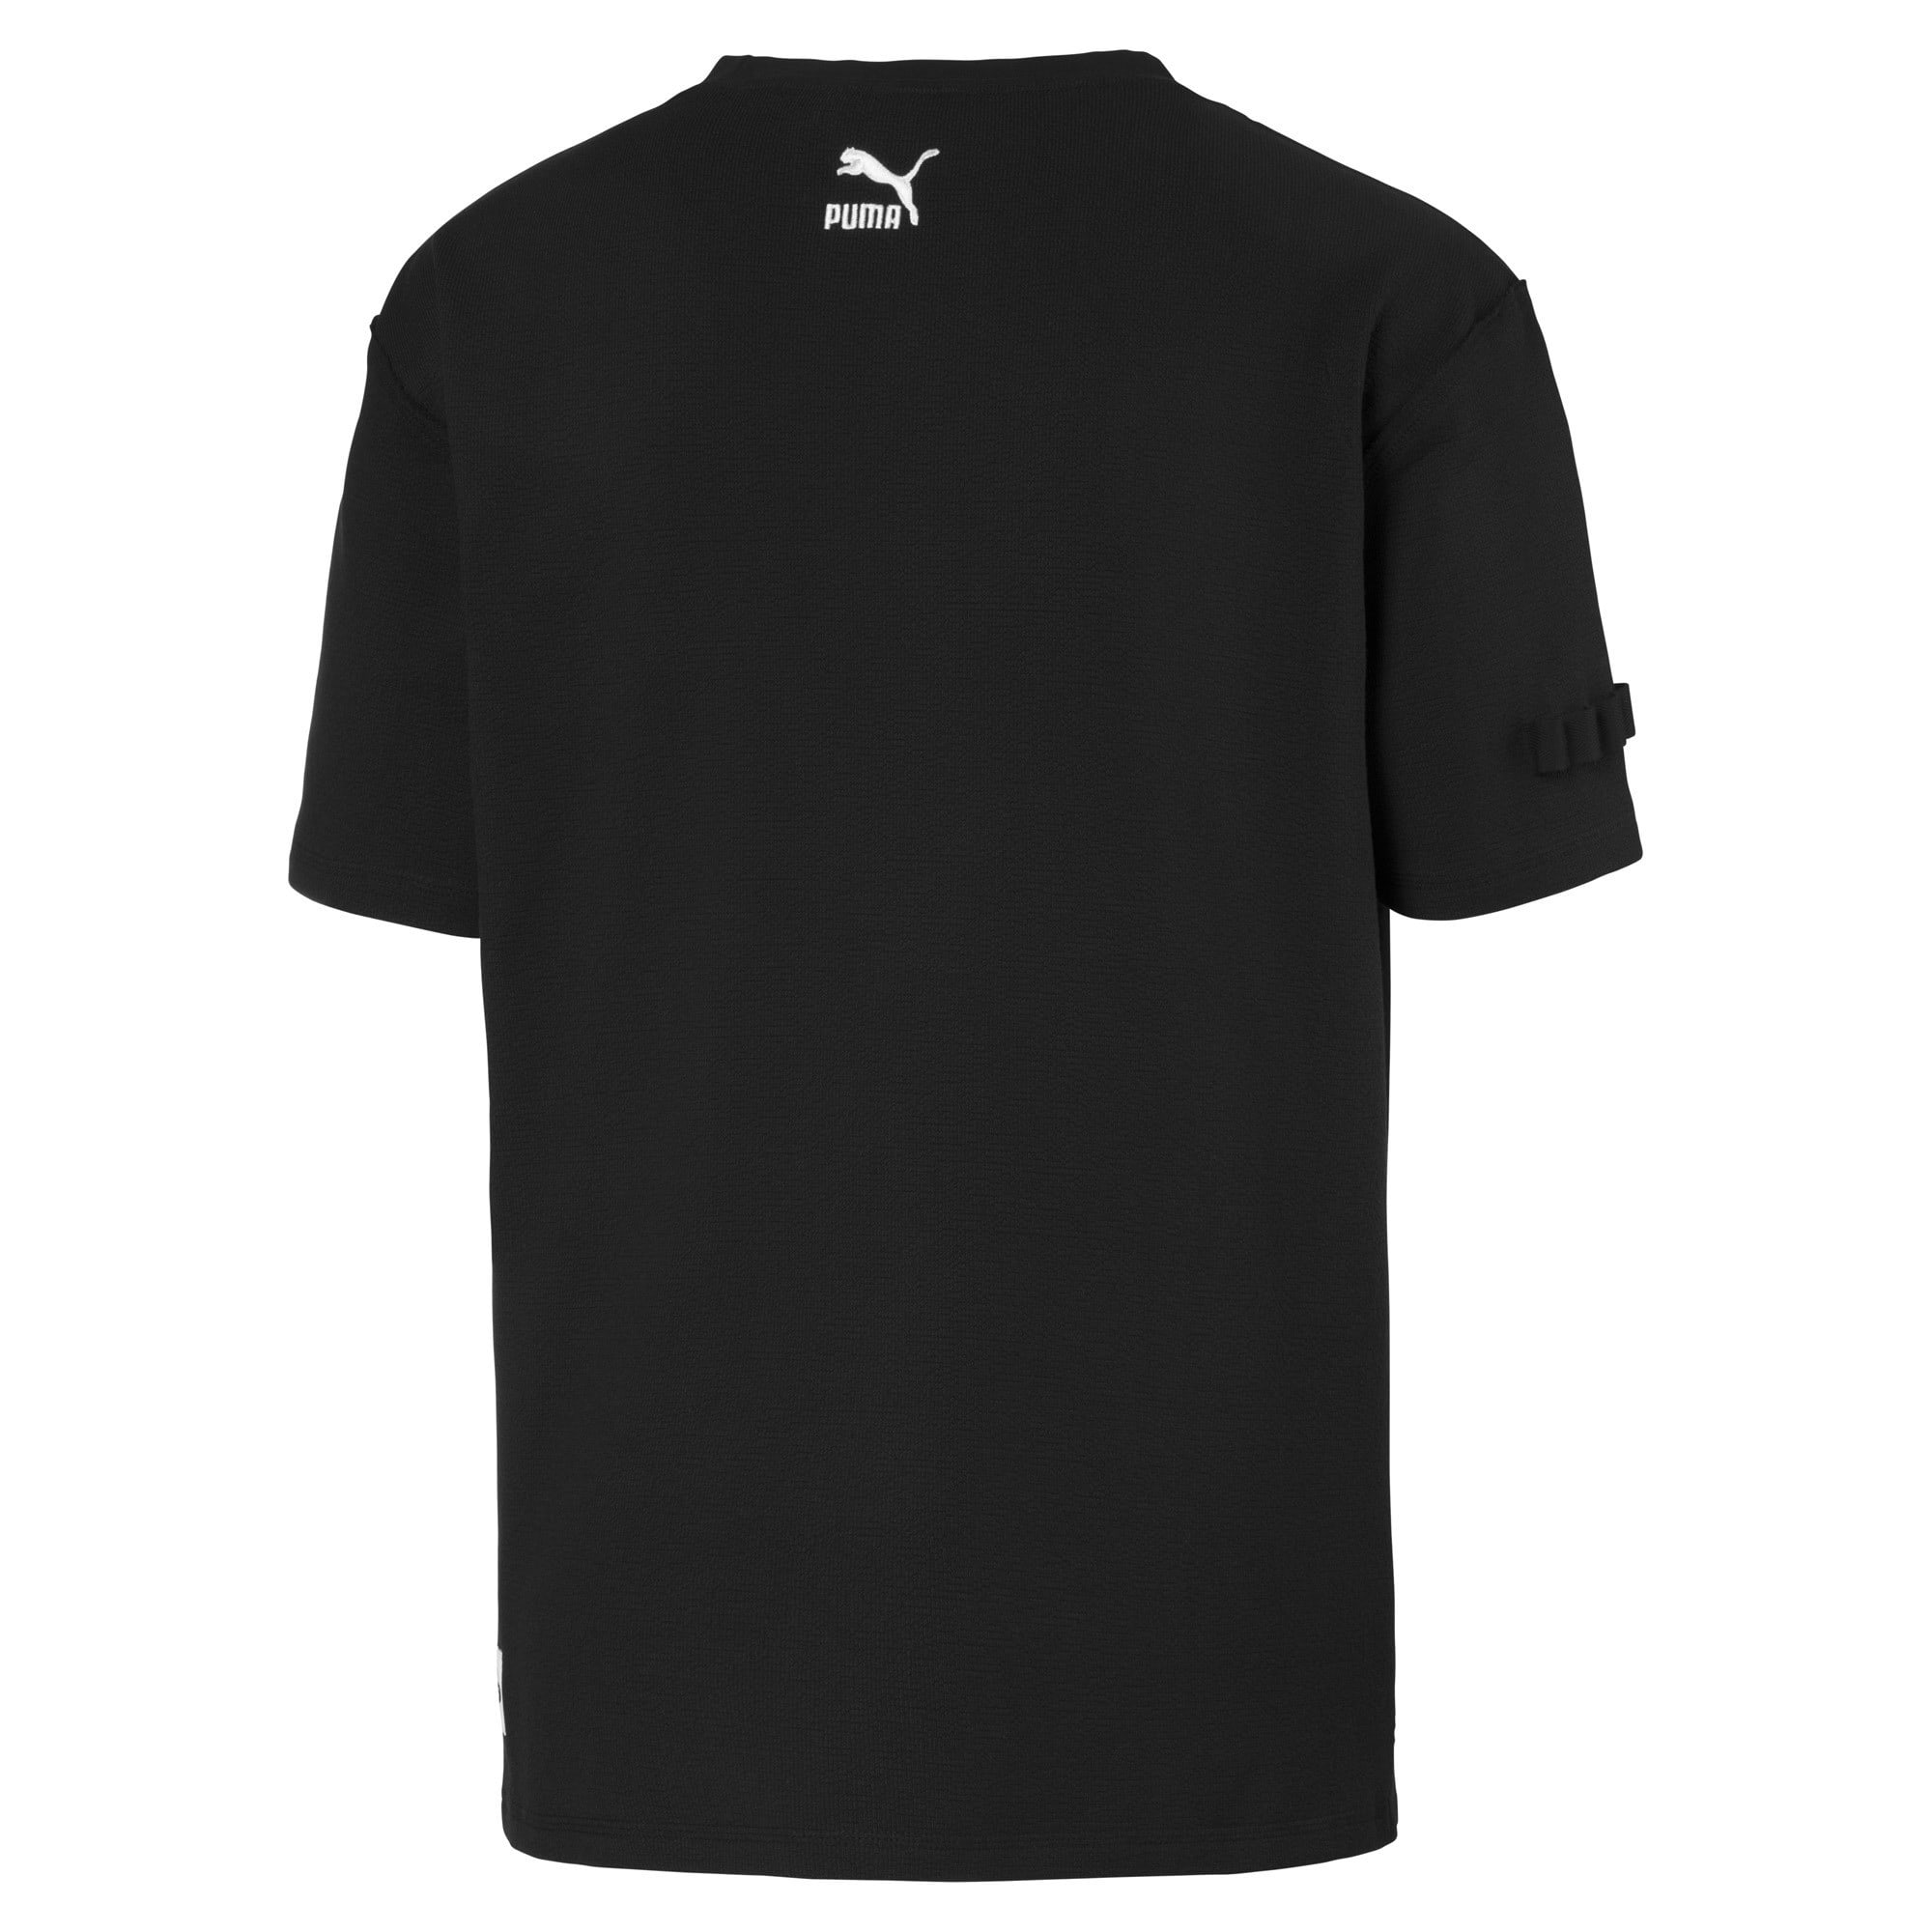 Thumbnail 5 of PUMA x TYAKASHA Tee, Cotton Black, medium